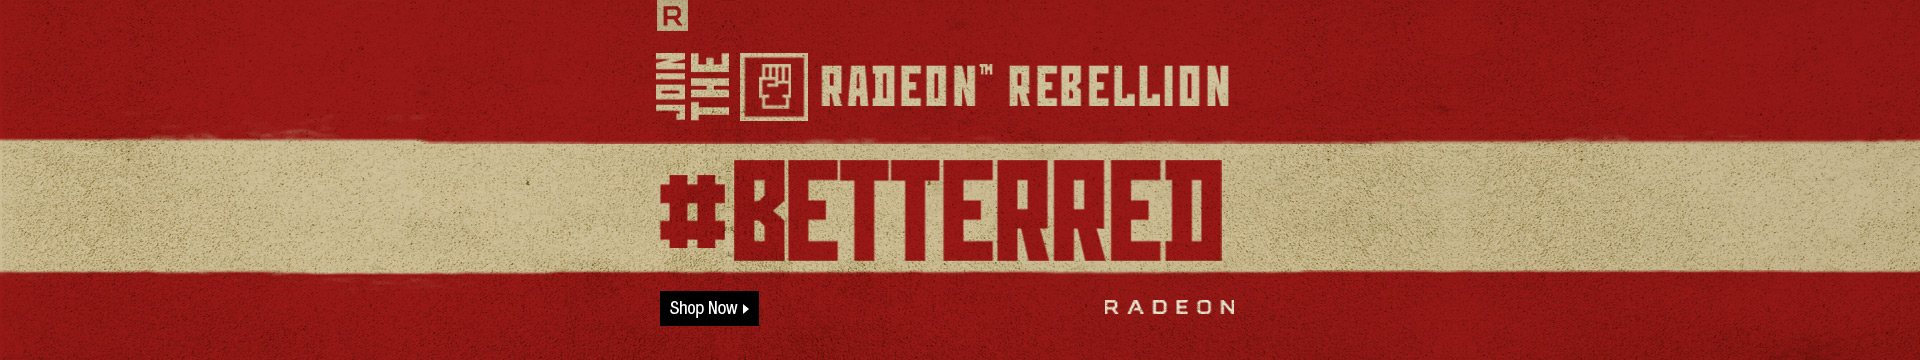 JOIN THE RADEON™ REBELLION